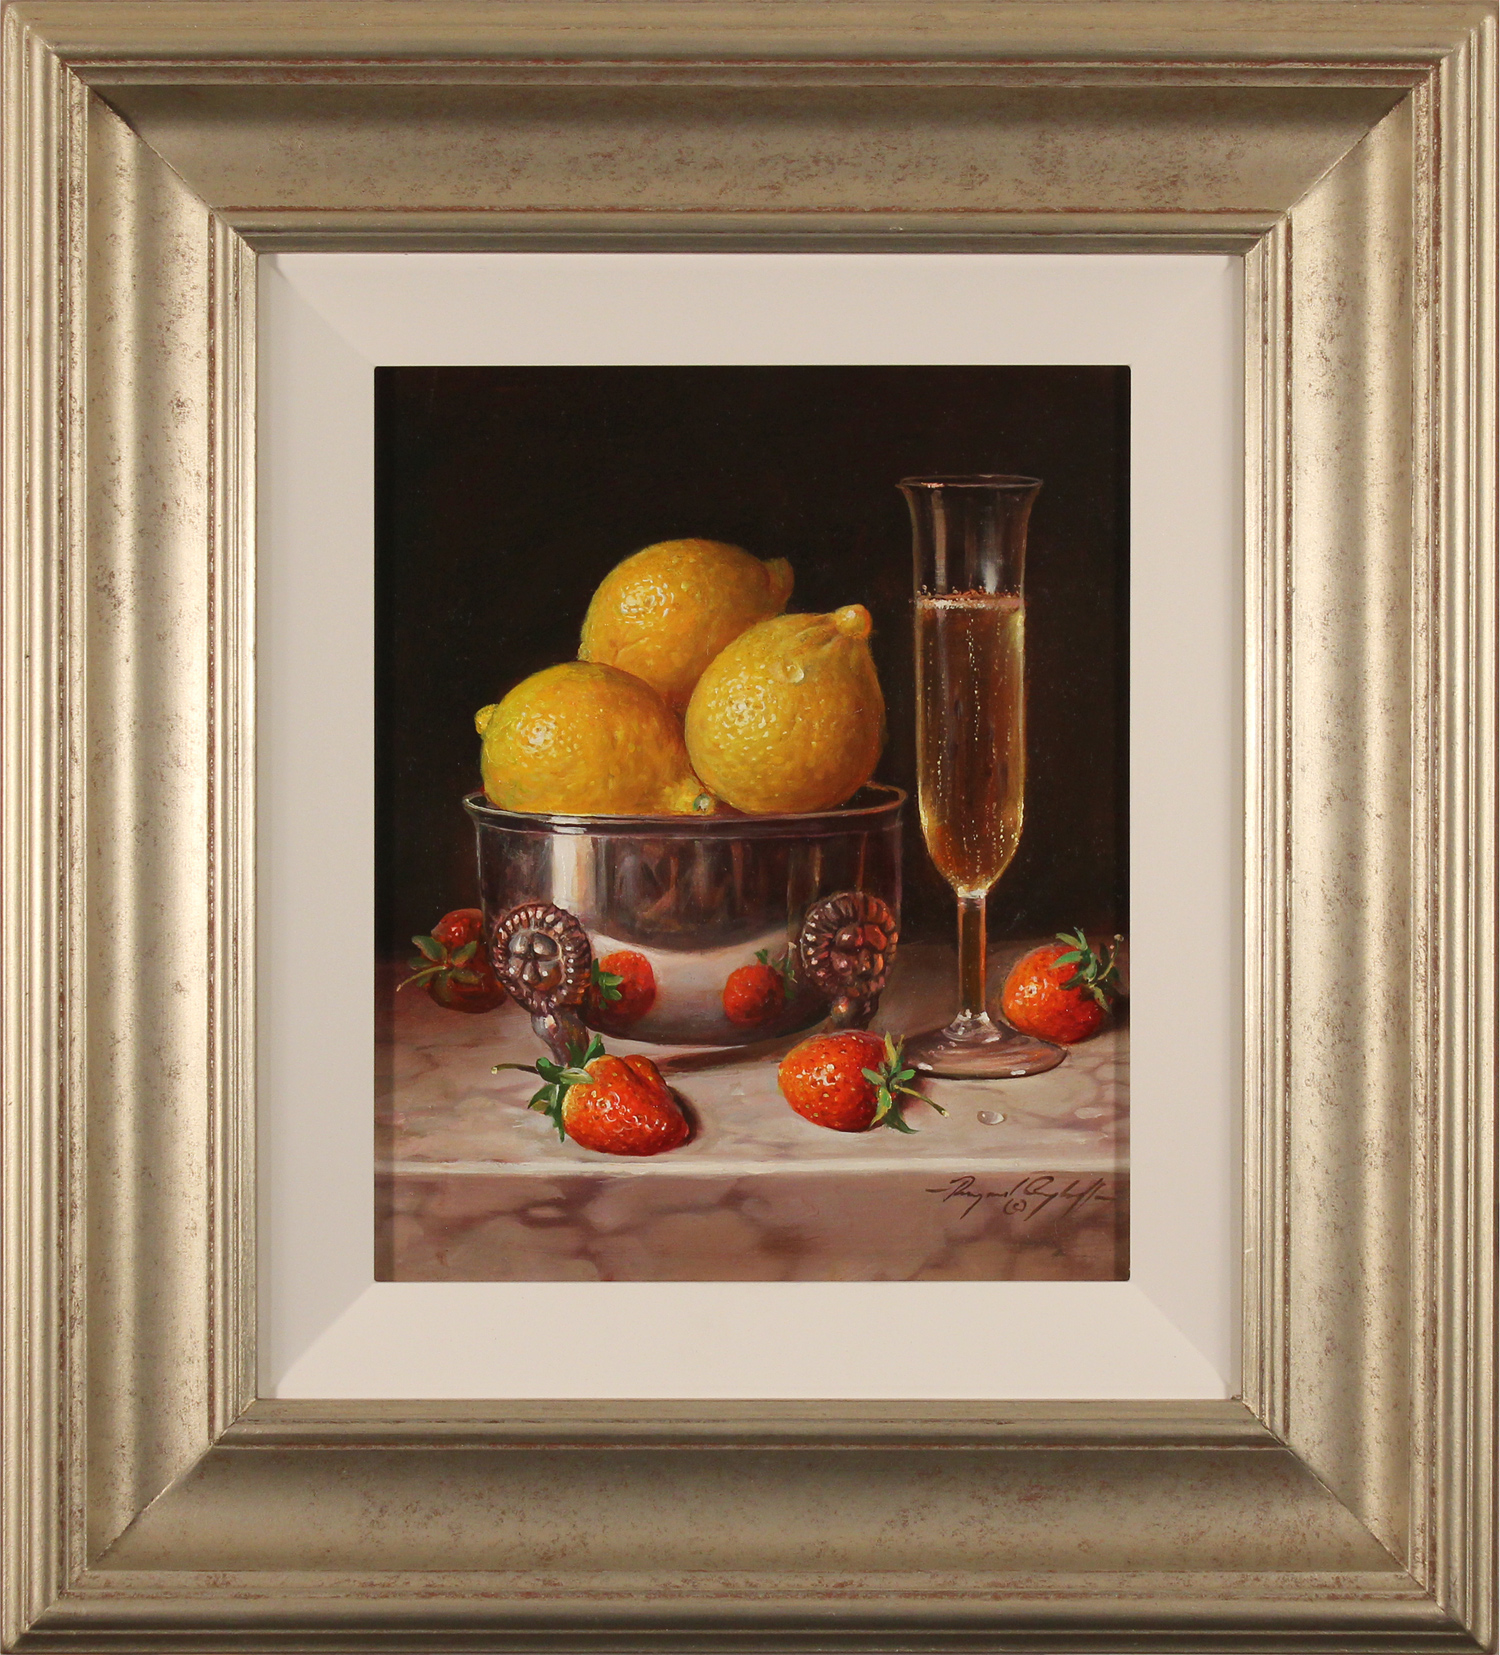 Raymond Campbell, Original oil painting on panel, Pleasure for the Palate, click to enlarge